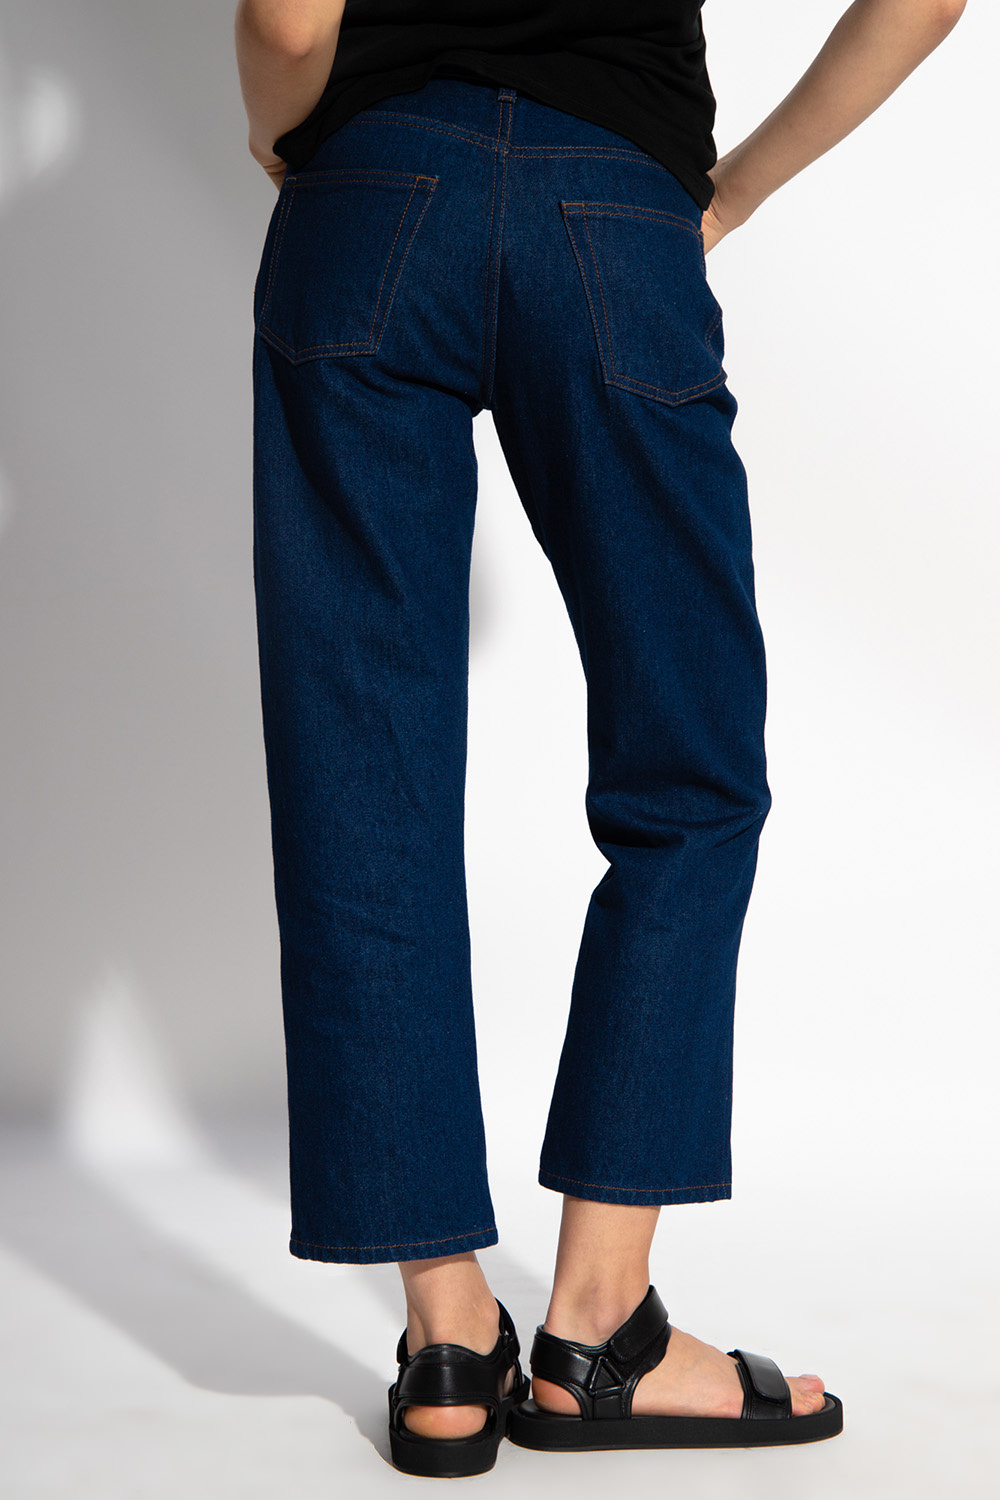 The Row 'Lesley' jeans